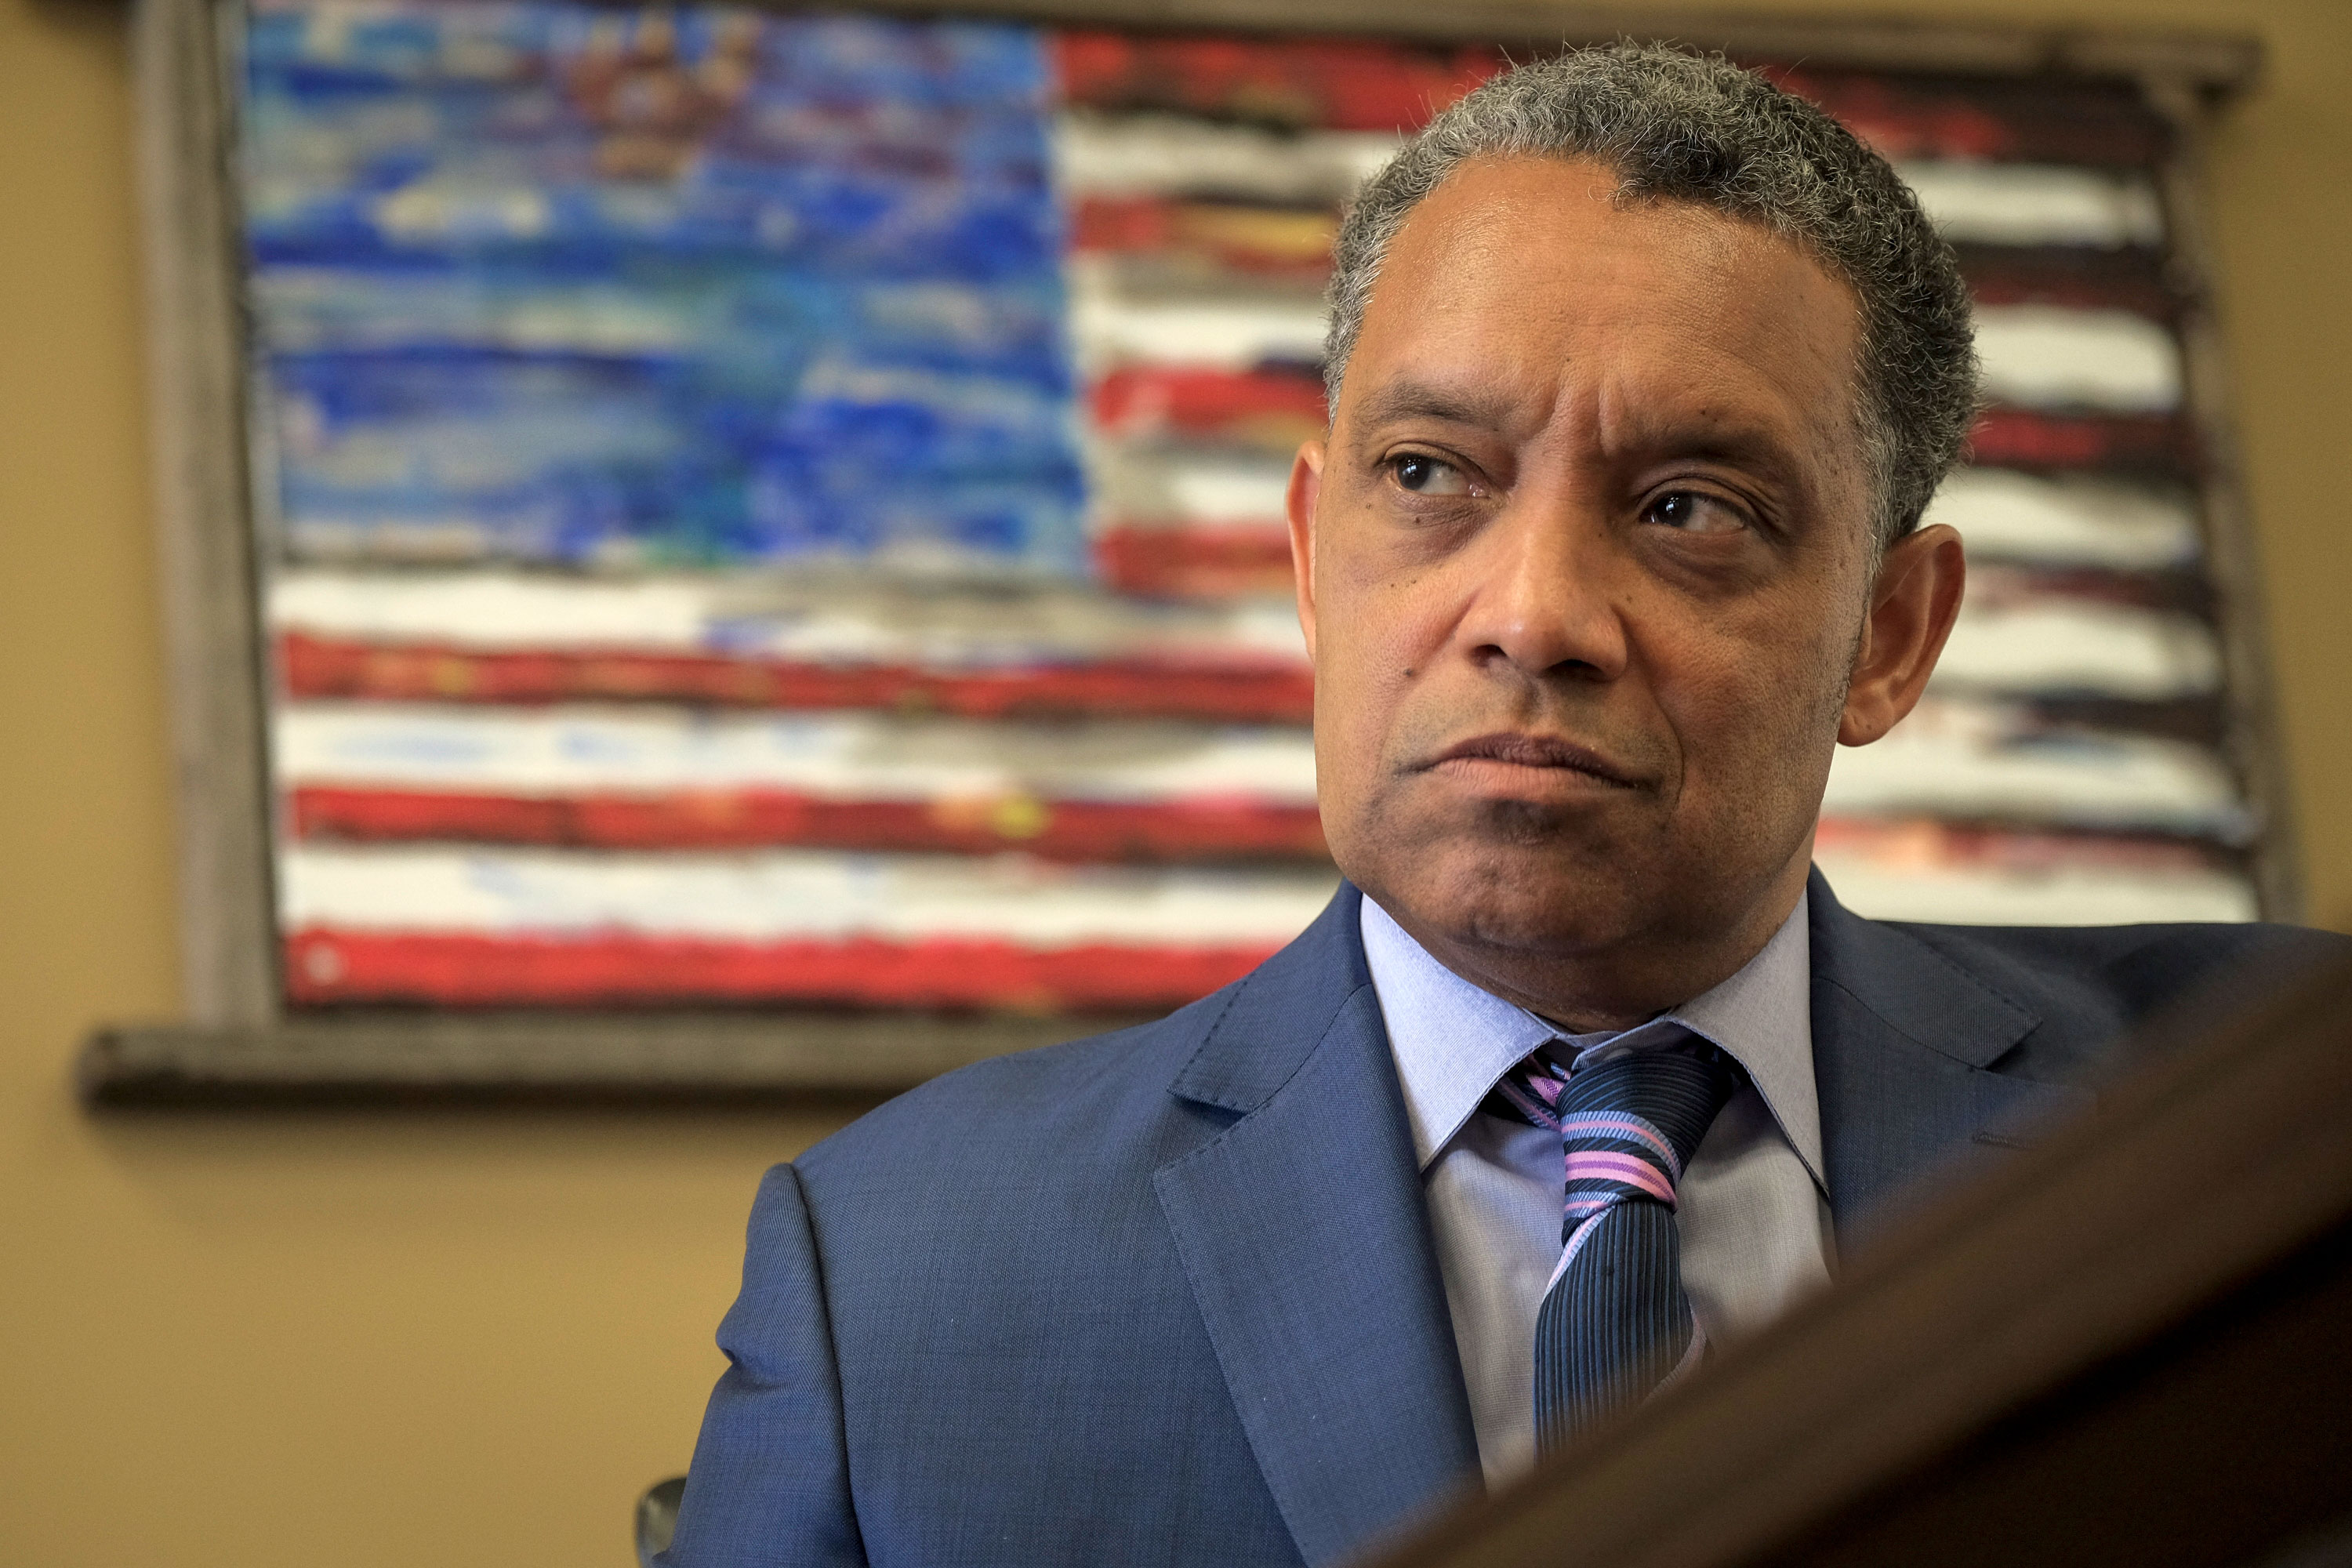 DC Attorney General Karl Racine is interviewed in his office at One Judiciary Square on March 7, 2019.